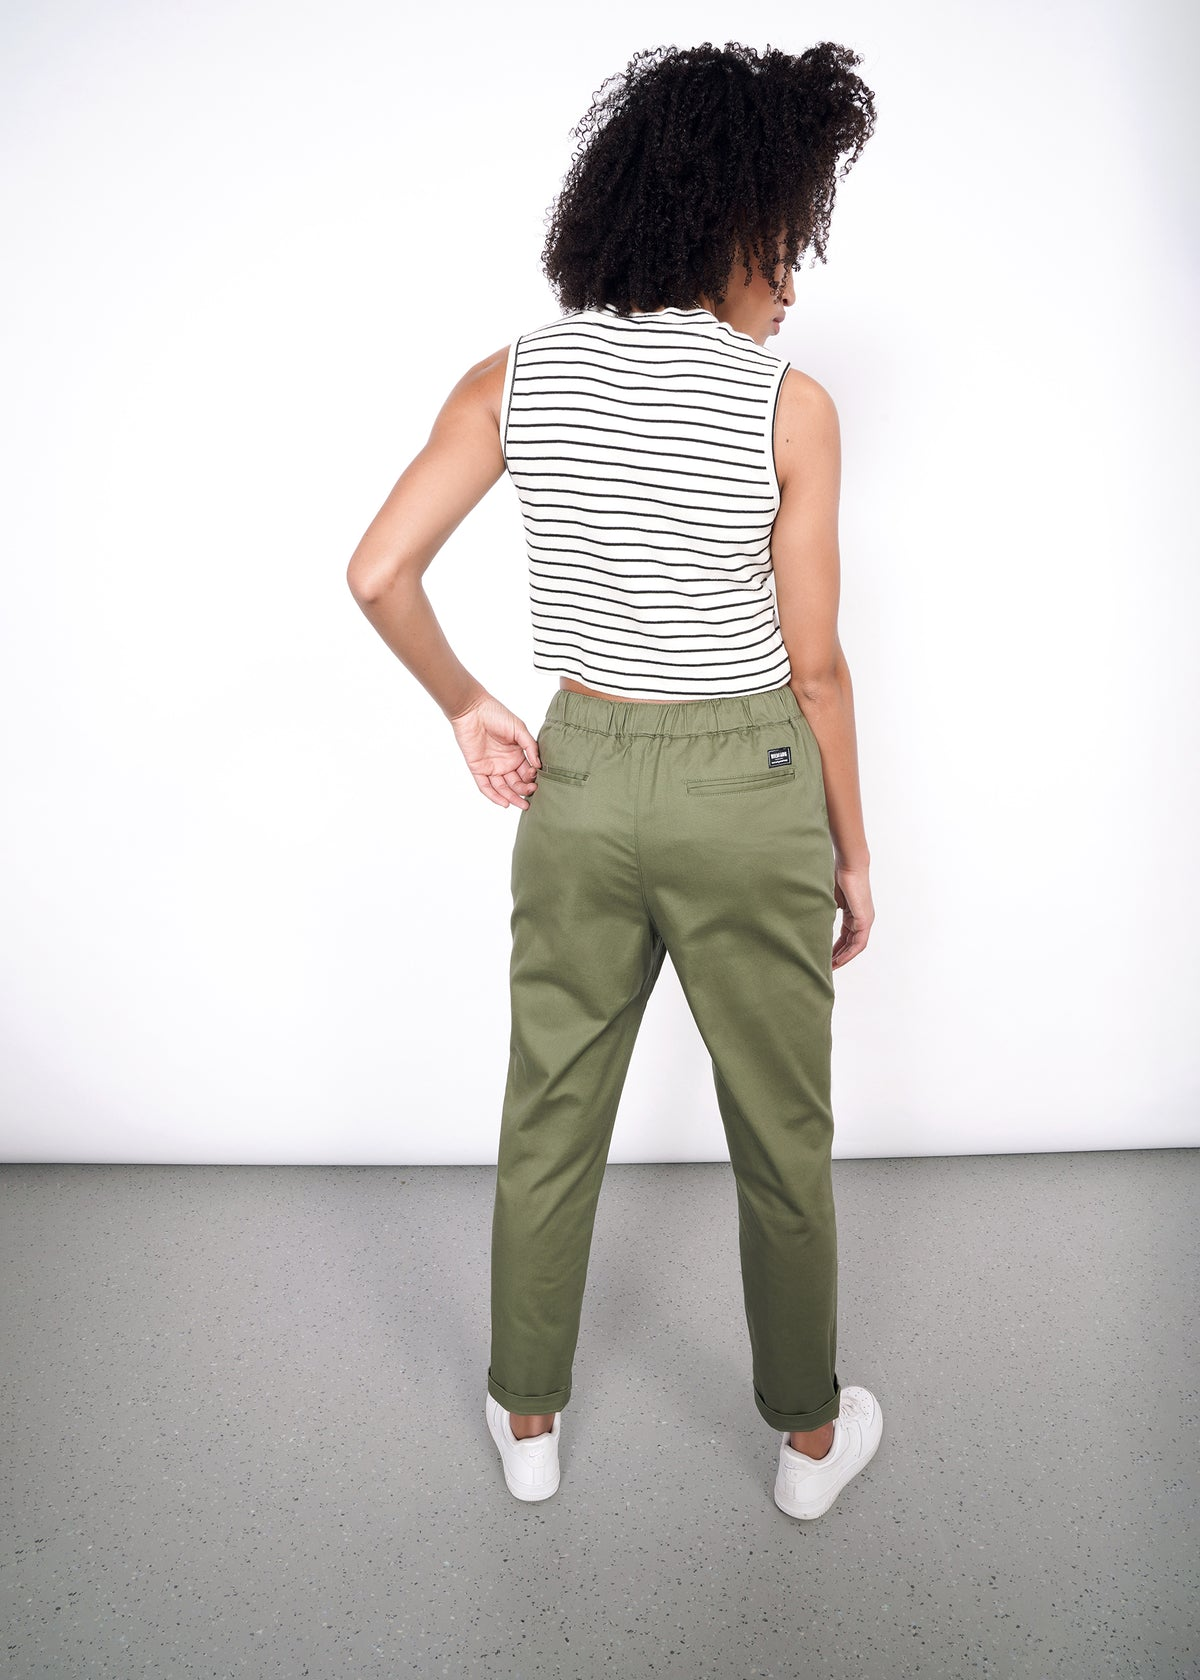 Model facing away from camera, showing back of the olive drawstring pants and two welted pockets